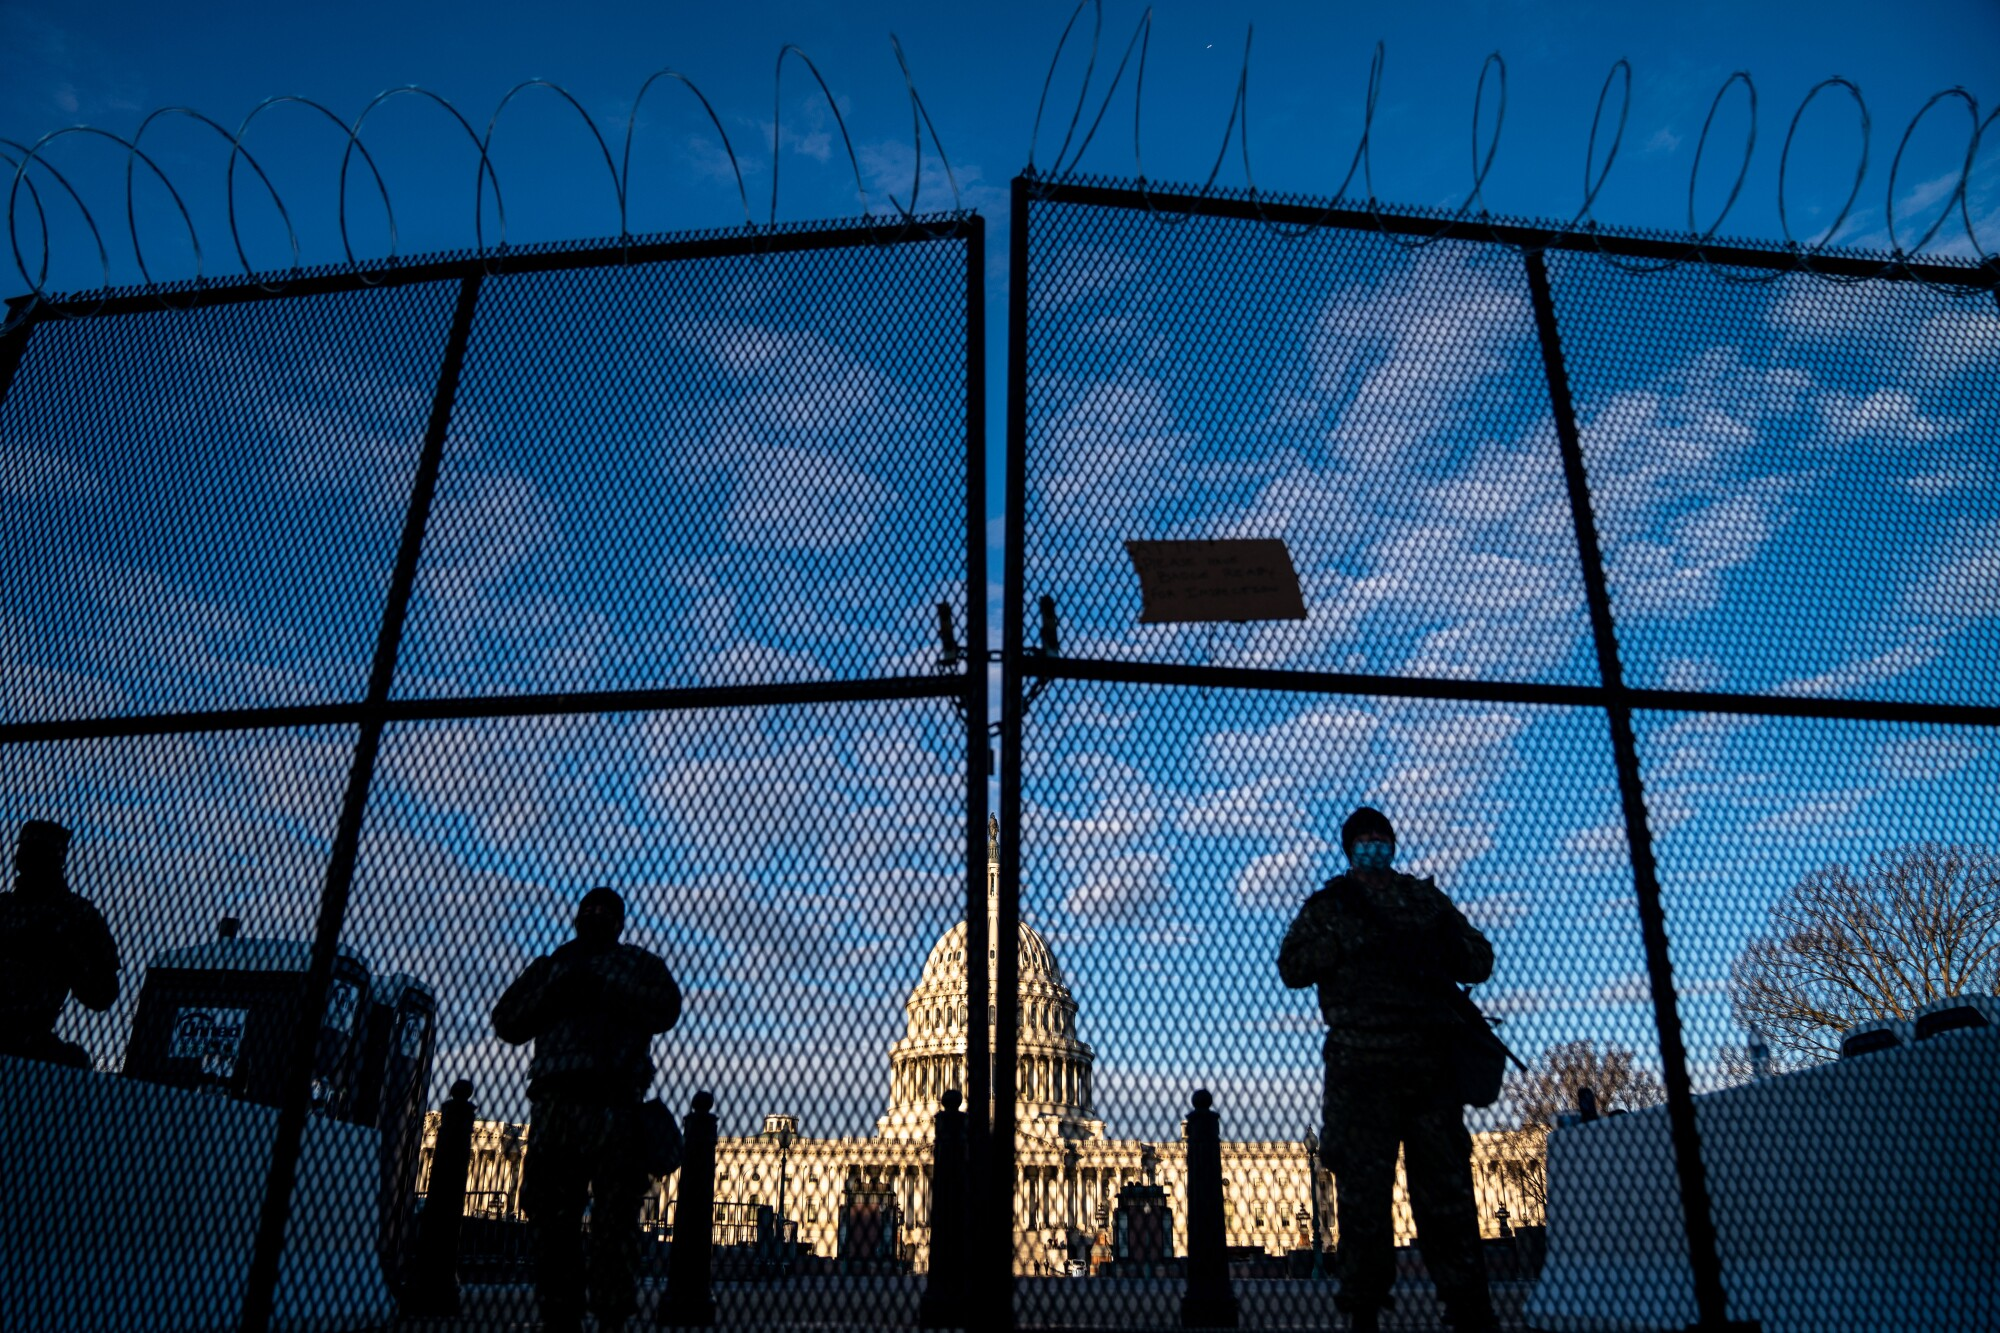 ational Guard troops stand behind security fencing with the dome of the U.S. Capitol Building behind them.